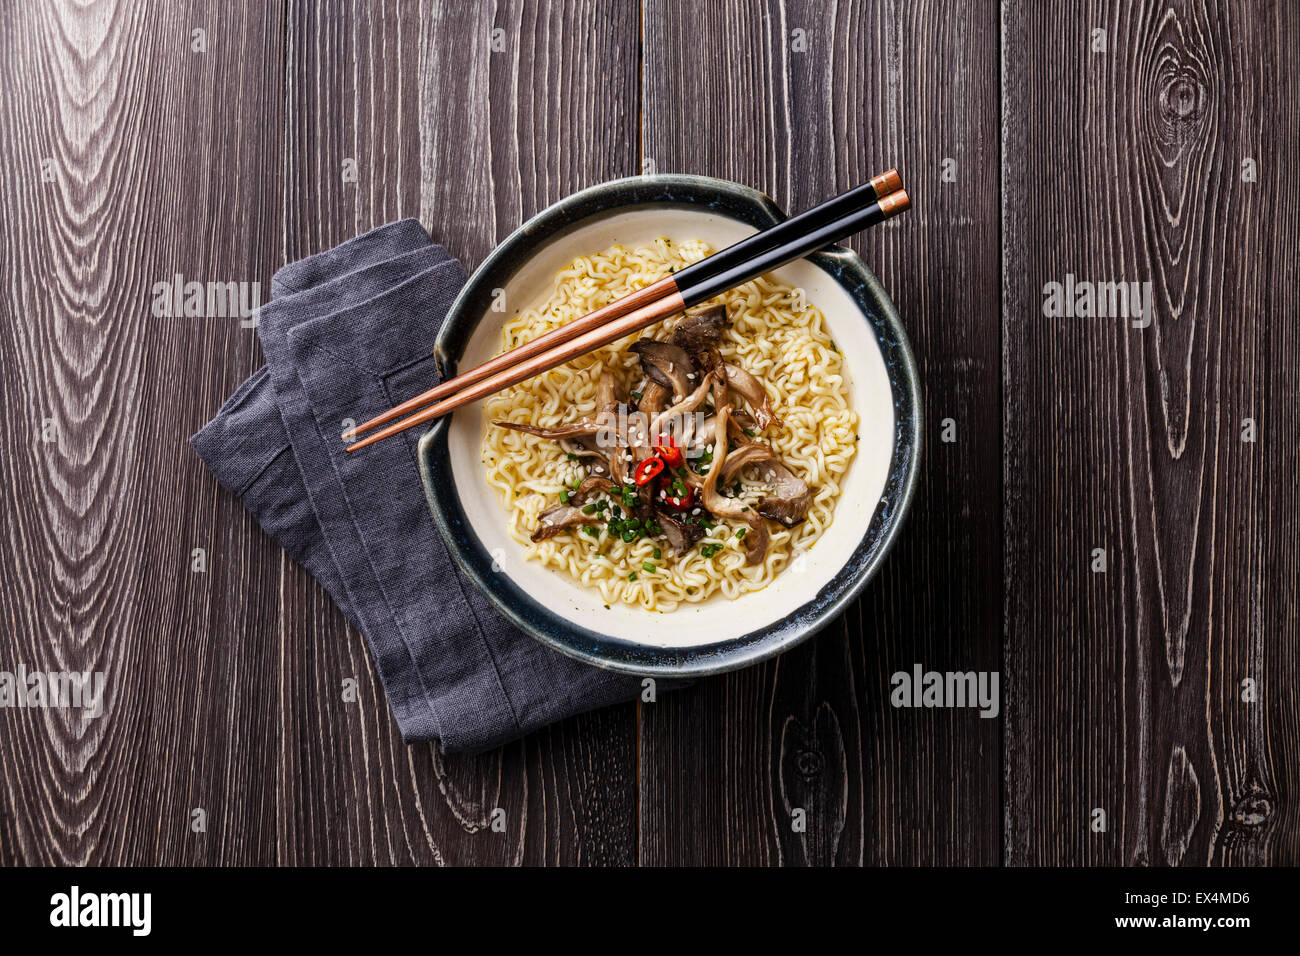 Asian noodles with Oyster mushrooms in bowl on gray wooden background - Stock Image